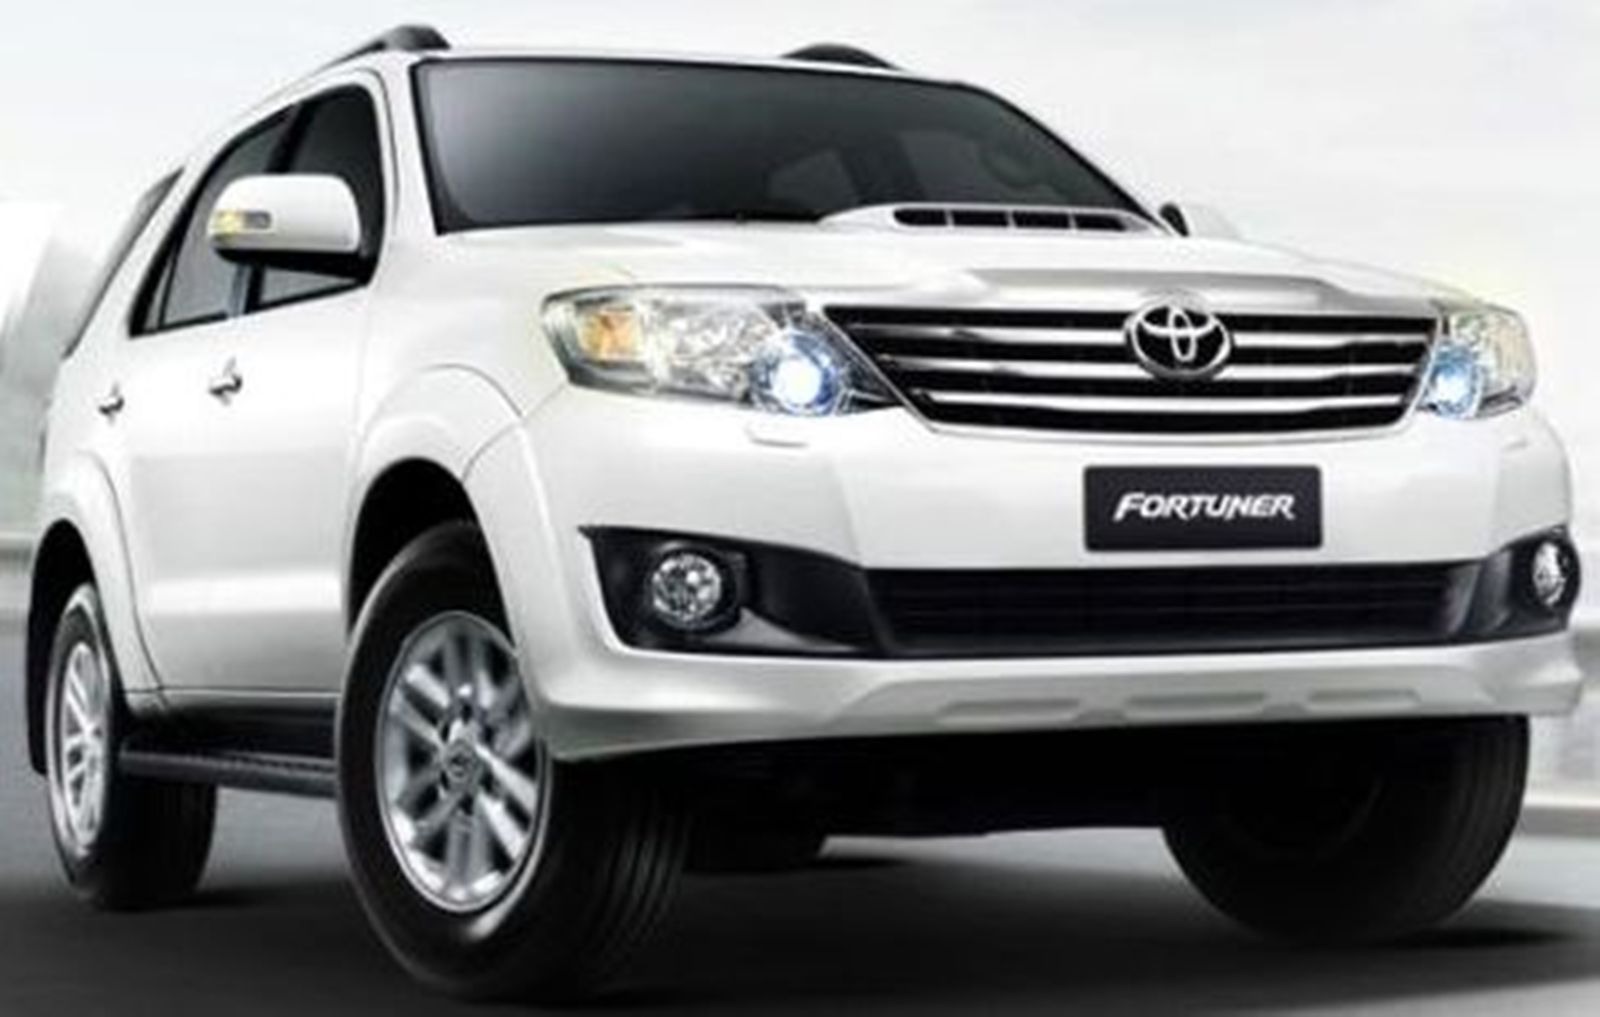 Maserati Philippines Price >> Latest Cars Models: Toyota fortuner 2013